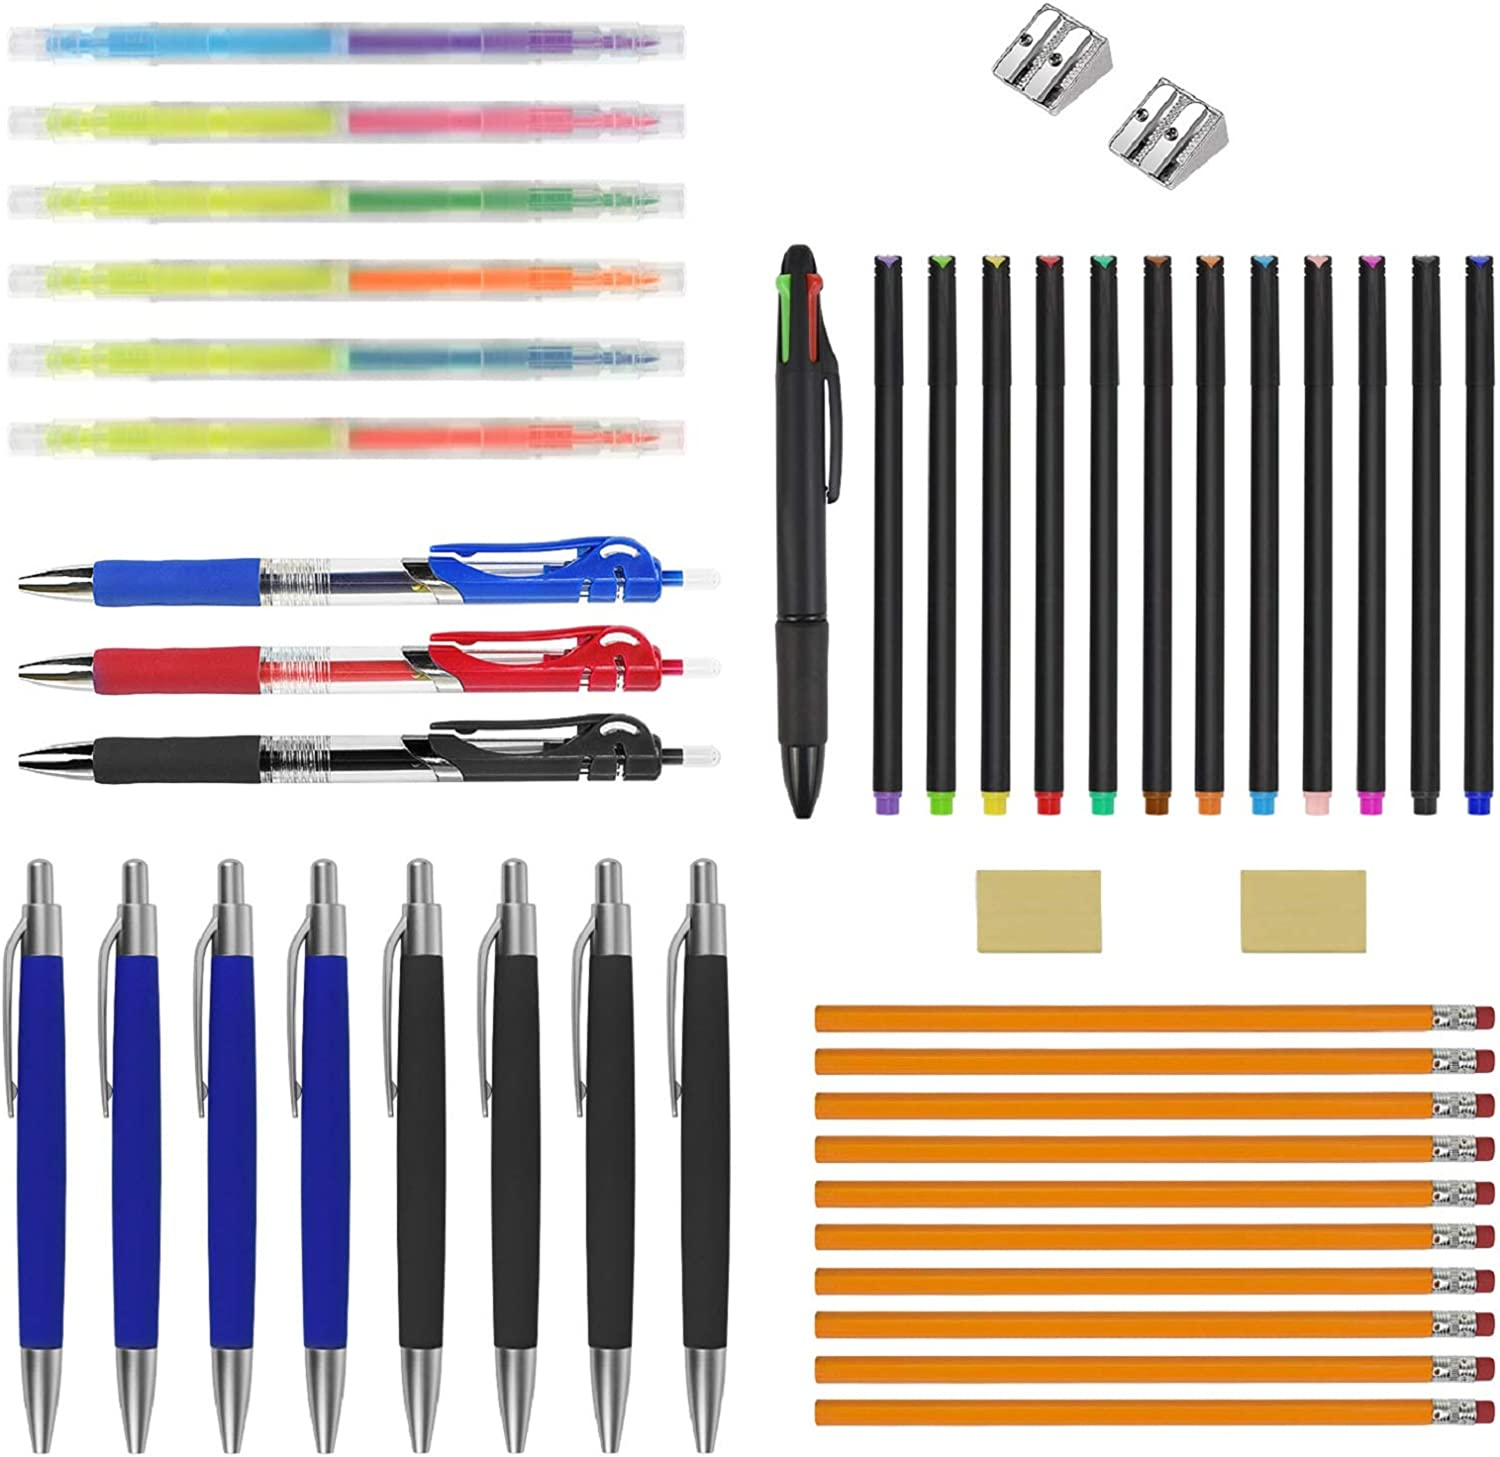 EAONE Writing Essentials Kit- Fineliner Color Pen Highlighter Pen Retractable Multicolor Ballpoint Pens Pencil with Erasers and Pencil Sharpener for Adults Student School Office Supplies-44 Counts